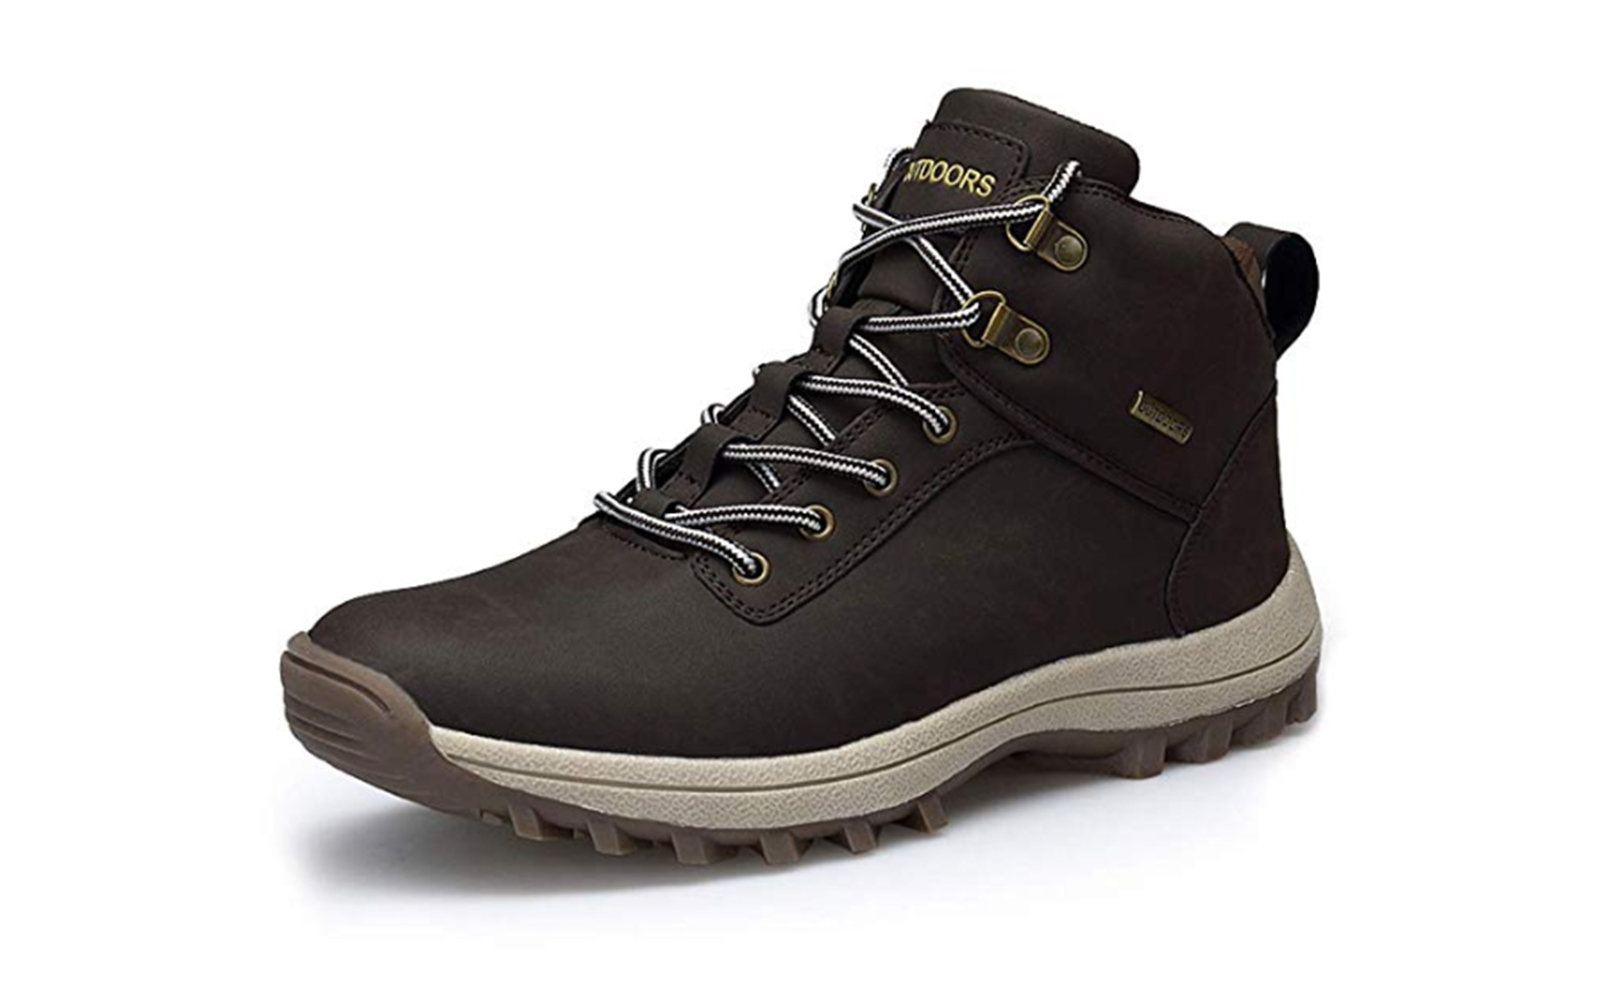 Best Lightweight Boots: RZEN Hiking Boots